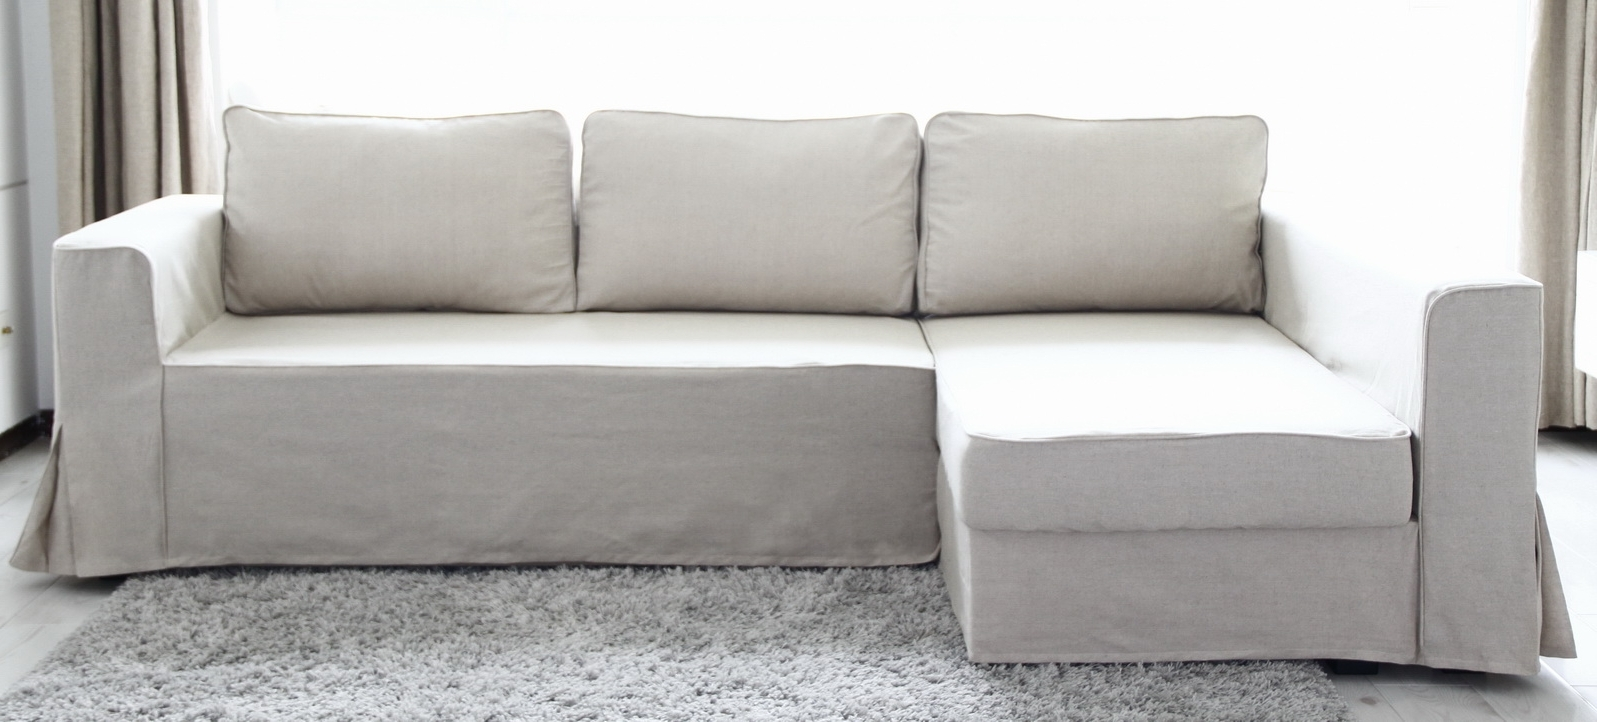 2017 Loose Fit Linen Manstad Sofa Slipcovers Now Available In Manstad Sofas (View 12 of 15)